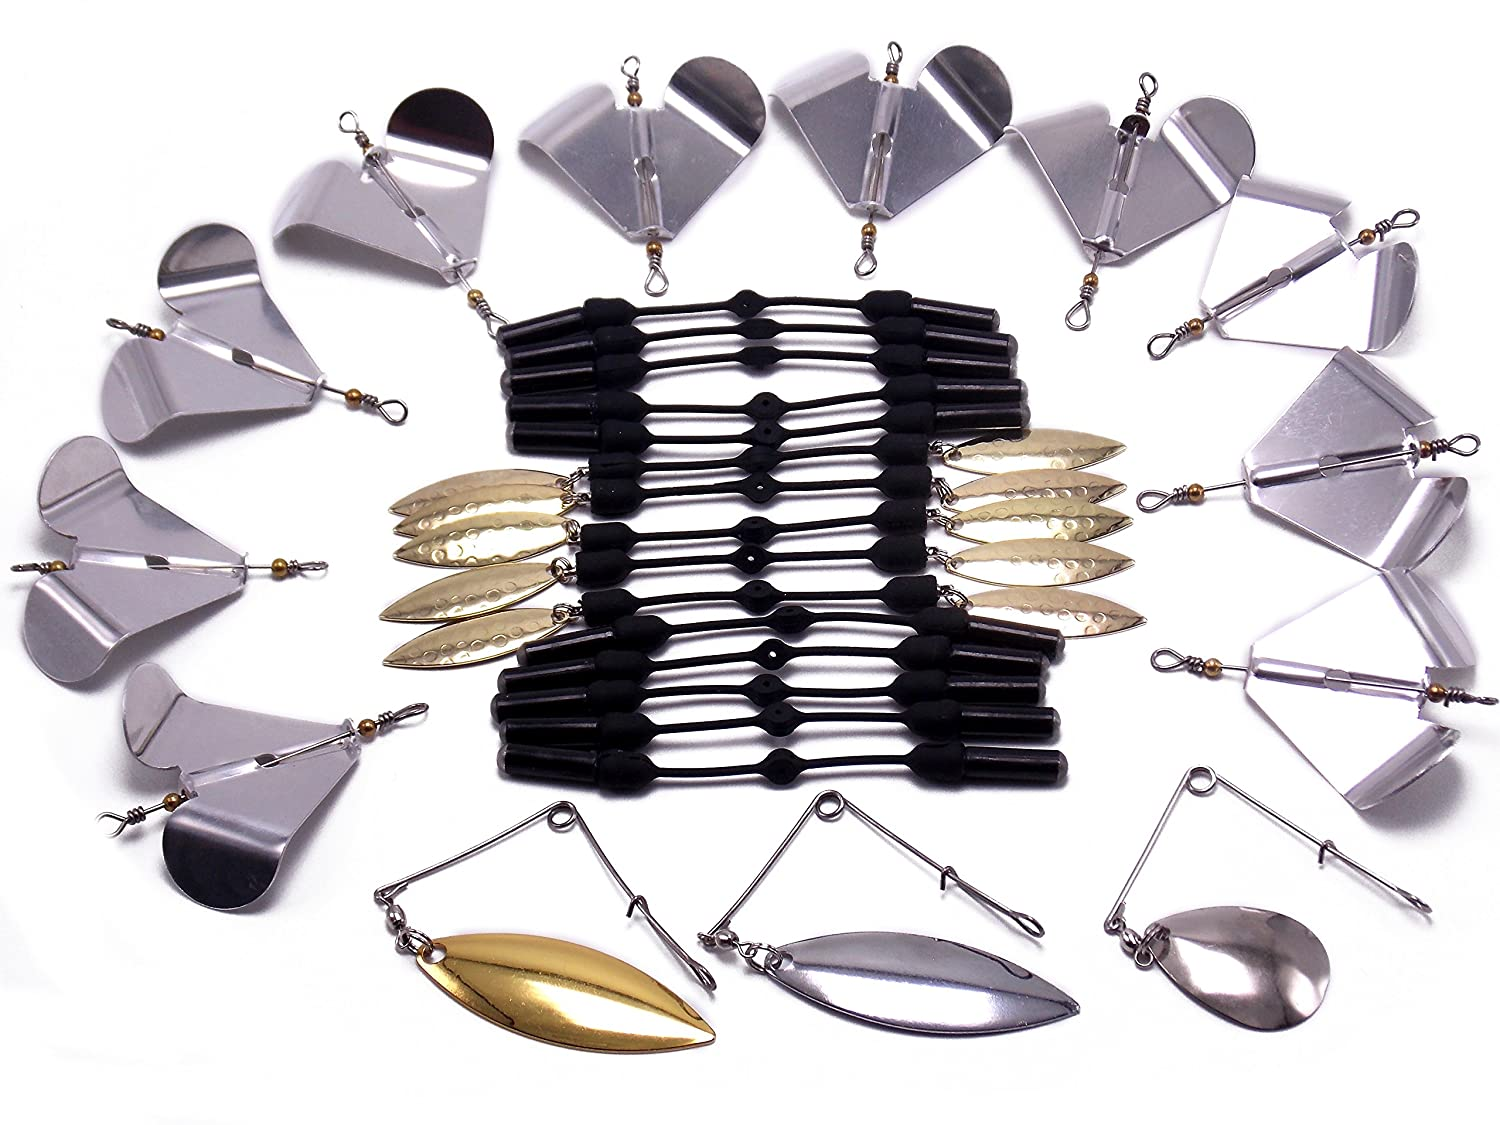 CATCHSIF 28pcs Lure Customization Blades and rattles for Spinners buzzbaits Swim jigs and chatterbaits